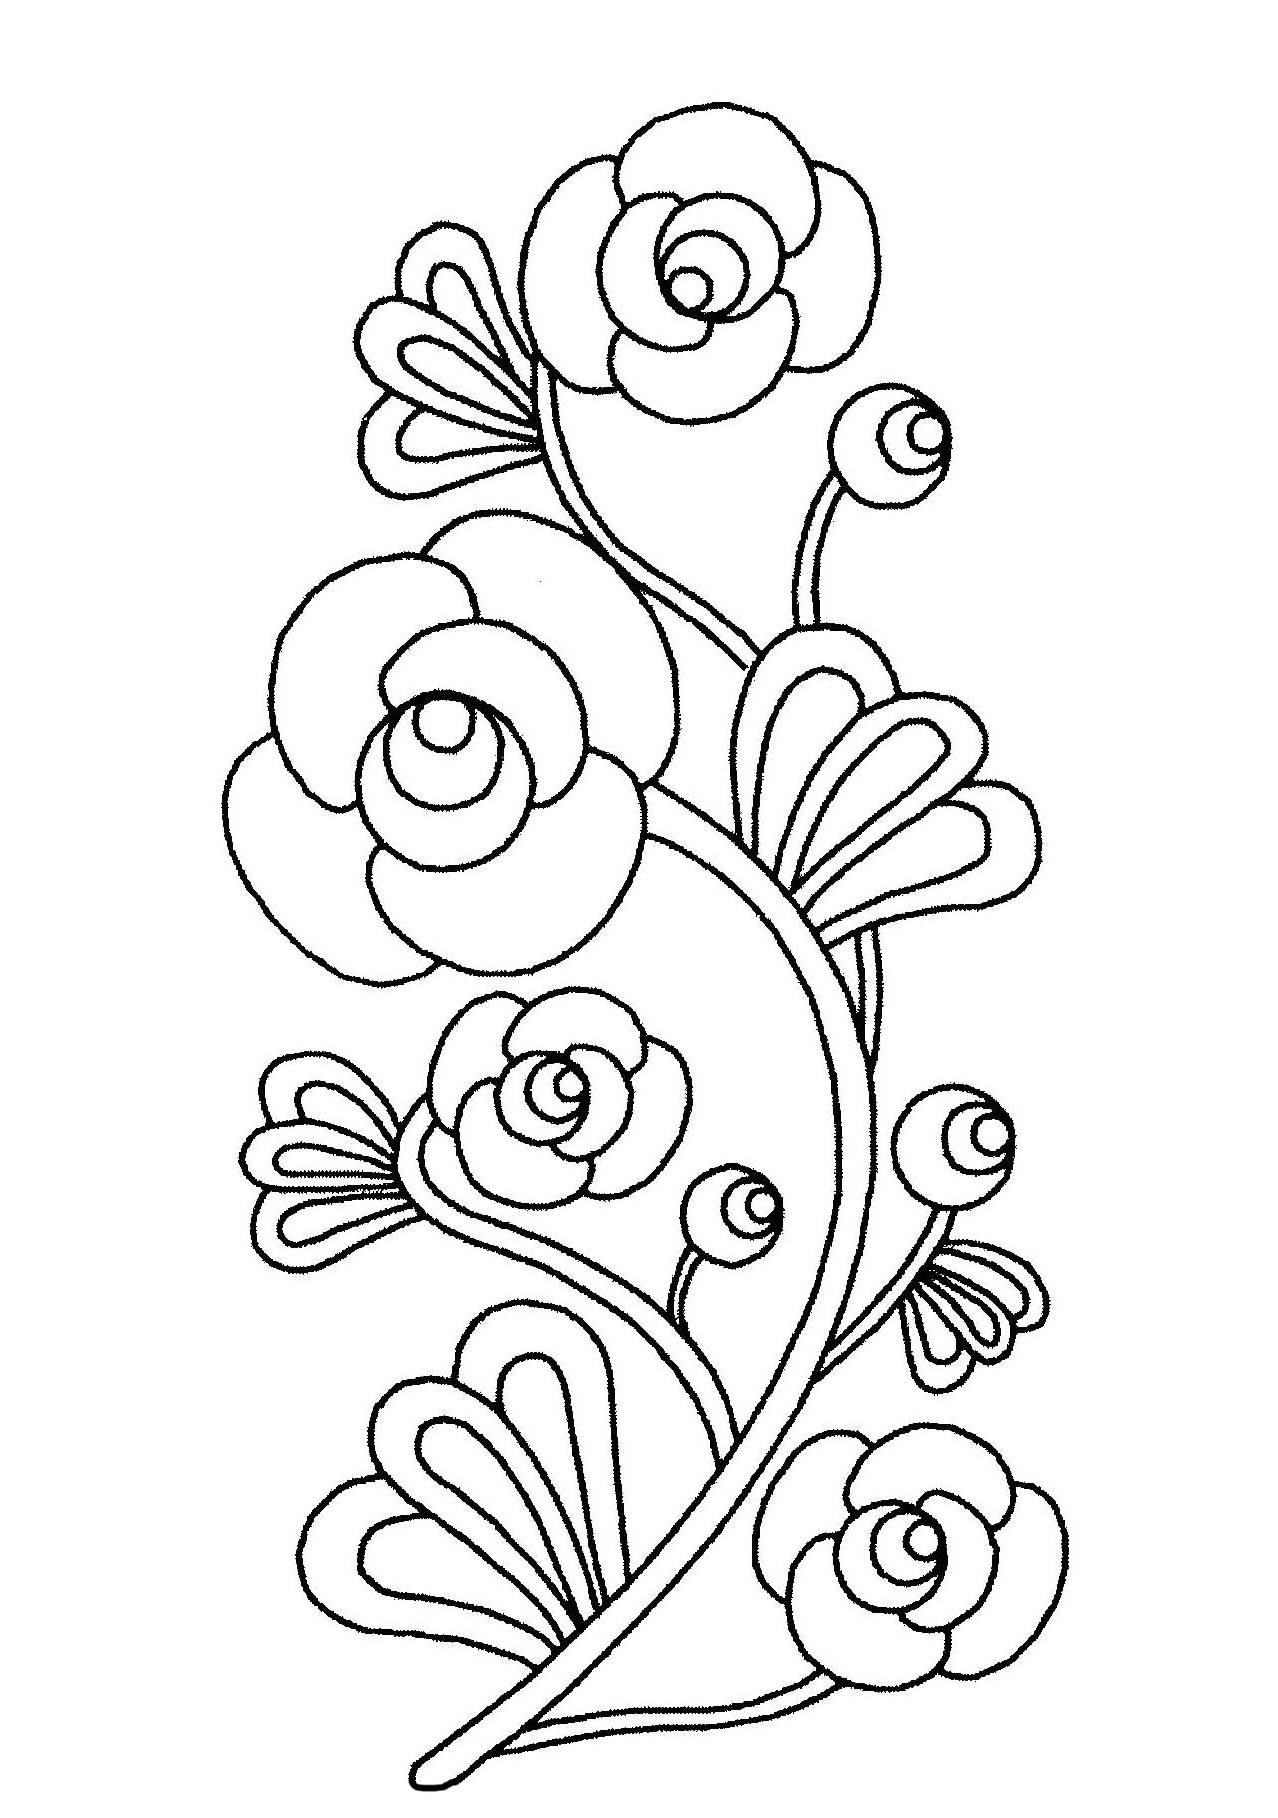 1278x1818 Printable Flower Coloring Pages For Kids Best Pictures To Print